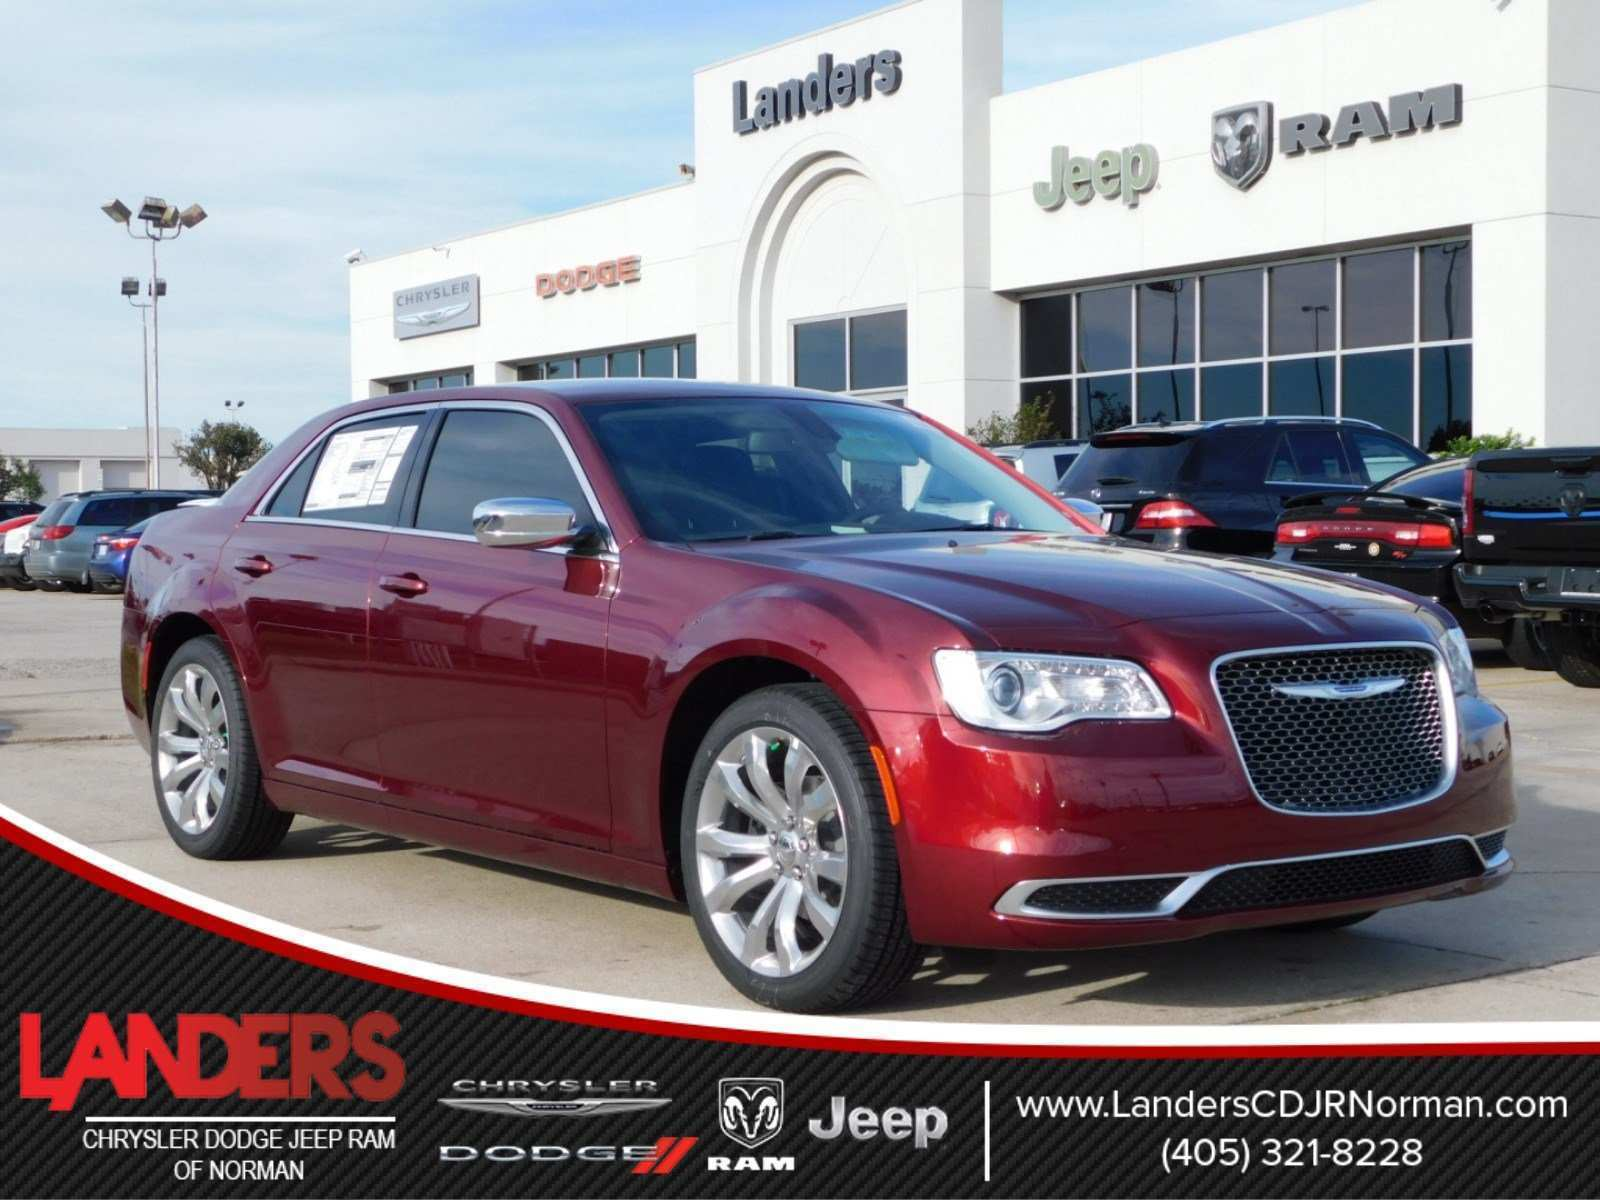 55 Gallery of 2019 Chrysler 300 Pics Ratings with 2019 Chrysler 300 Pics